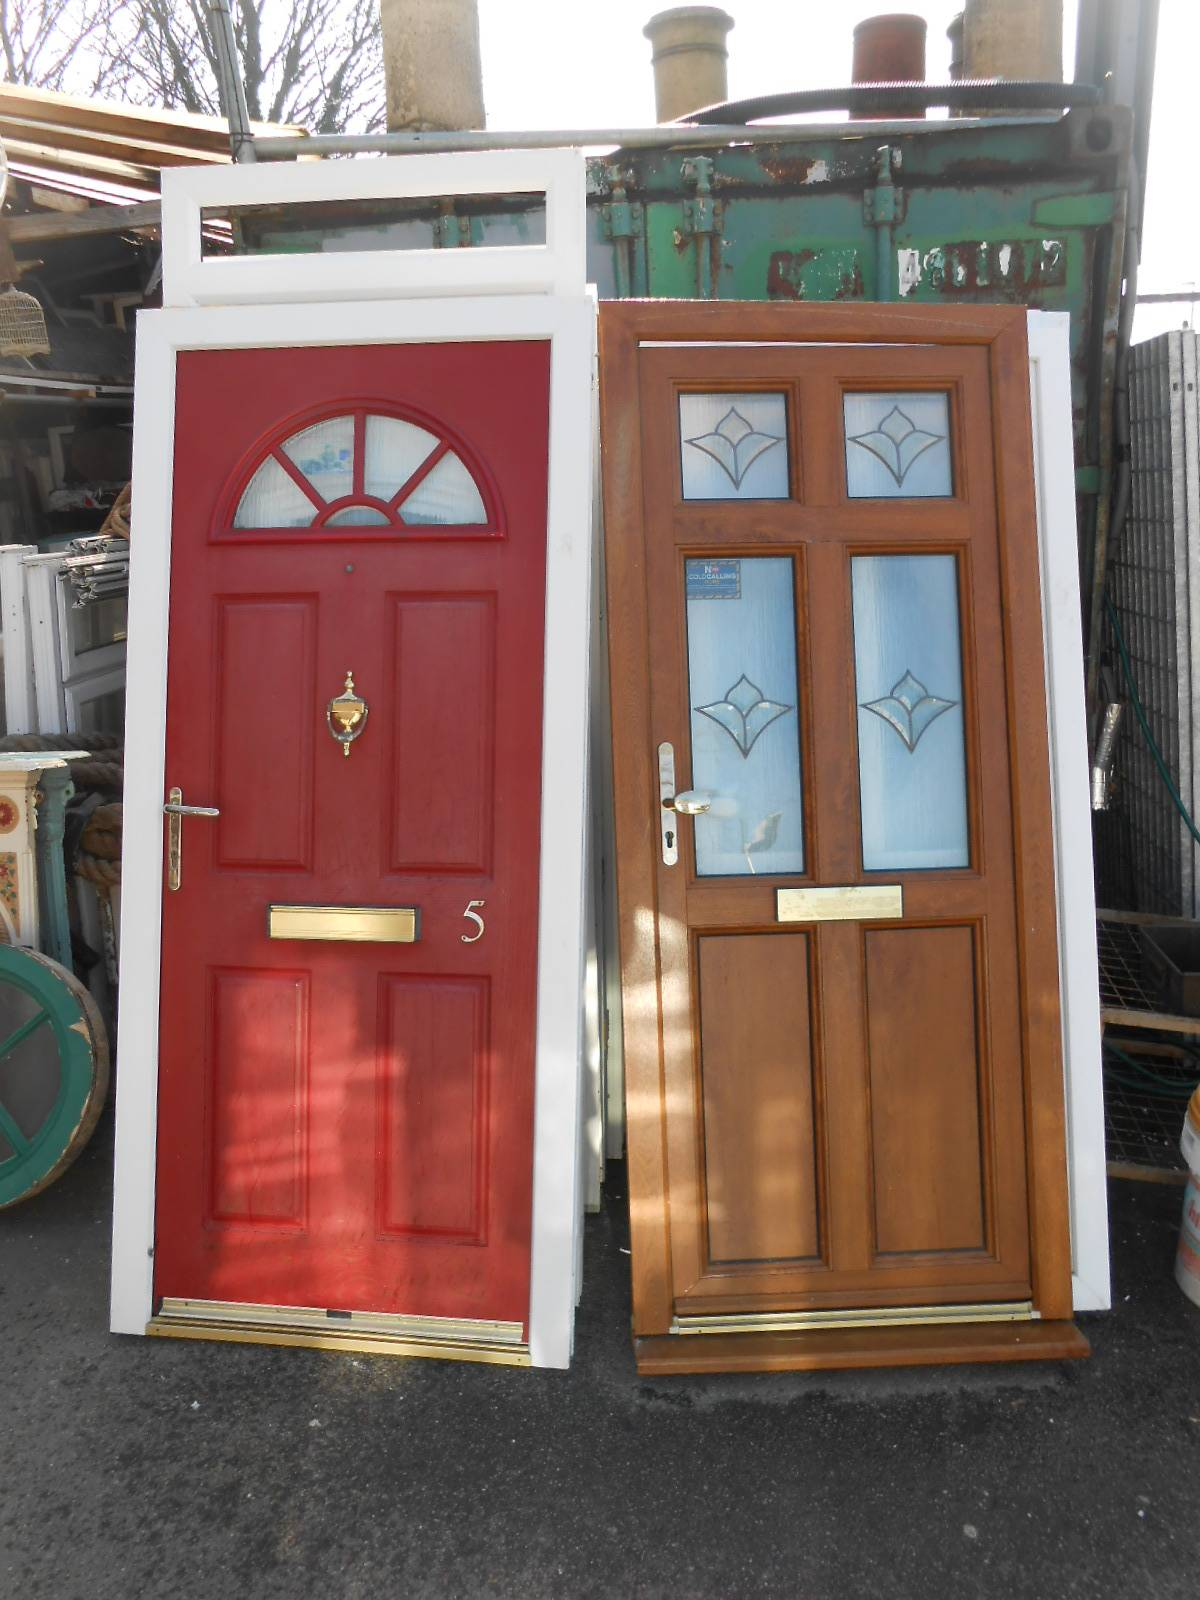 Doors A1 Builders Reclamation Yard Strood Rochester